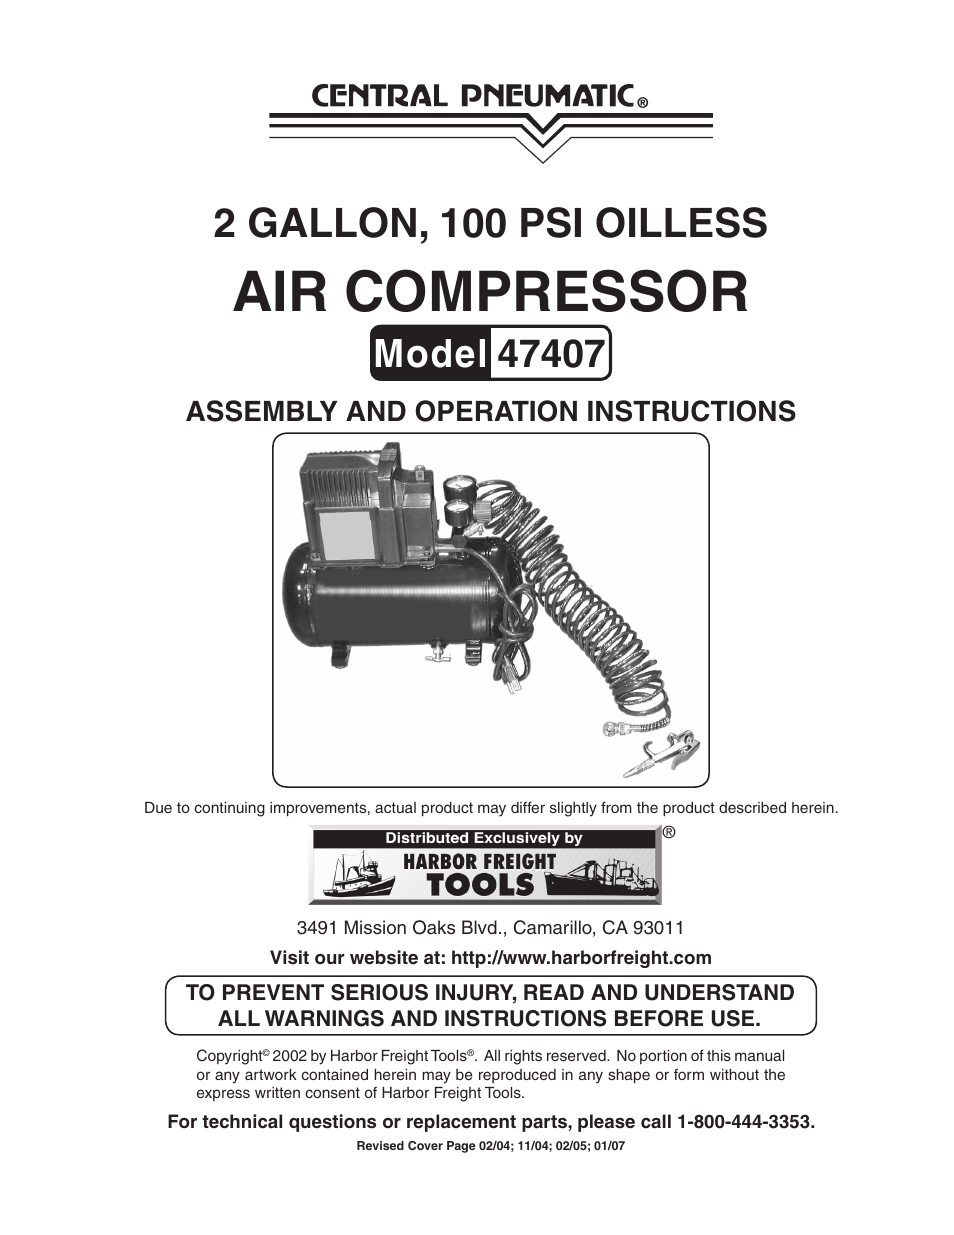 hight resolution of harbor freight tools central pneumatic 47407 user manual